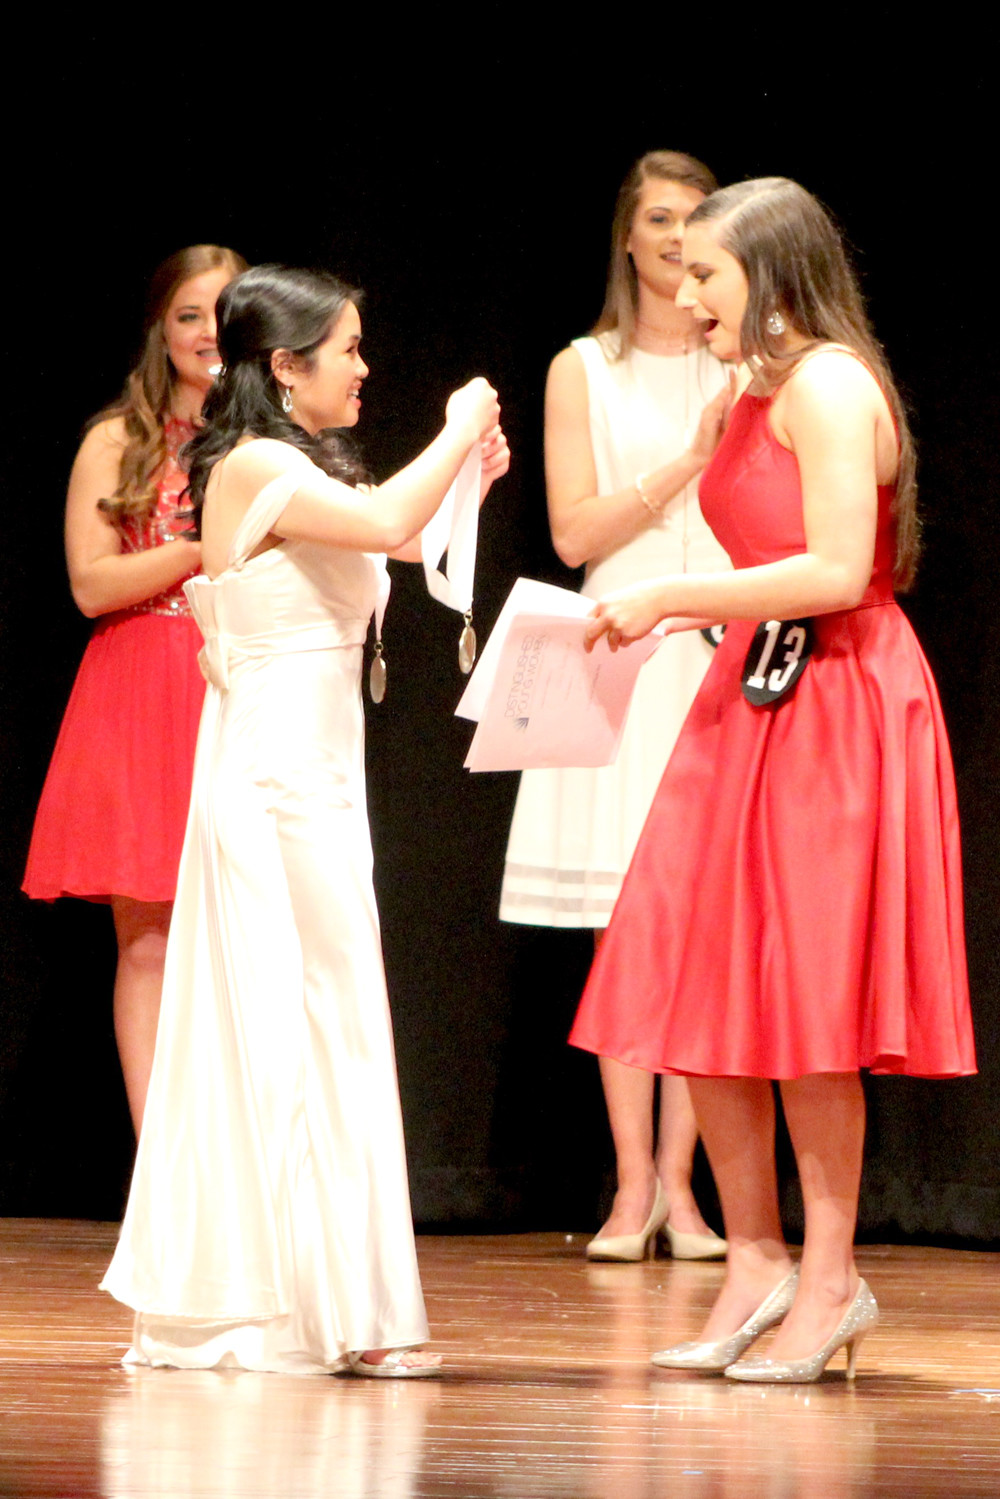 JASMINE NGO, Distinguished Young Woman of Cleveland for 2018, places a medallion around the neck of the 2019 title-holder, Elena Burton.